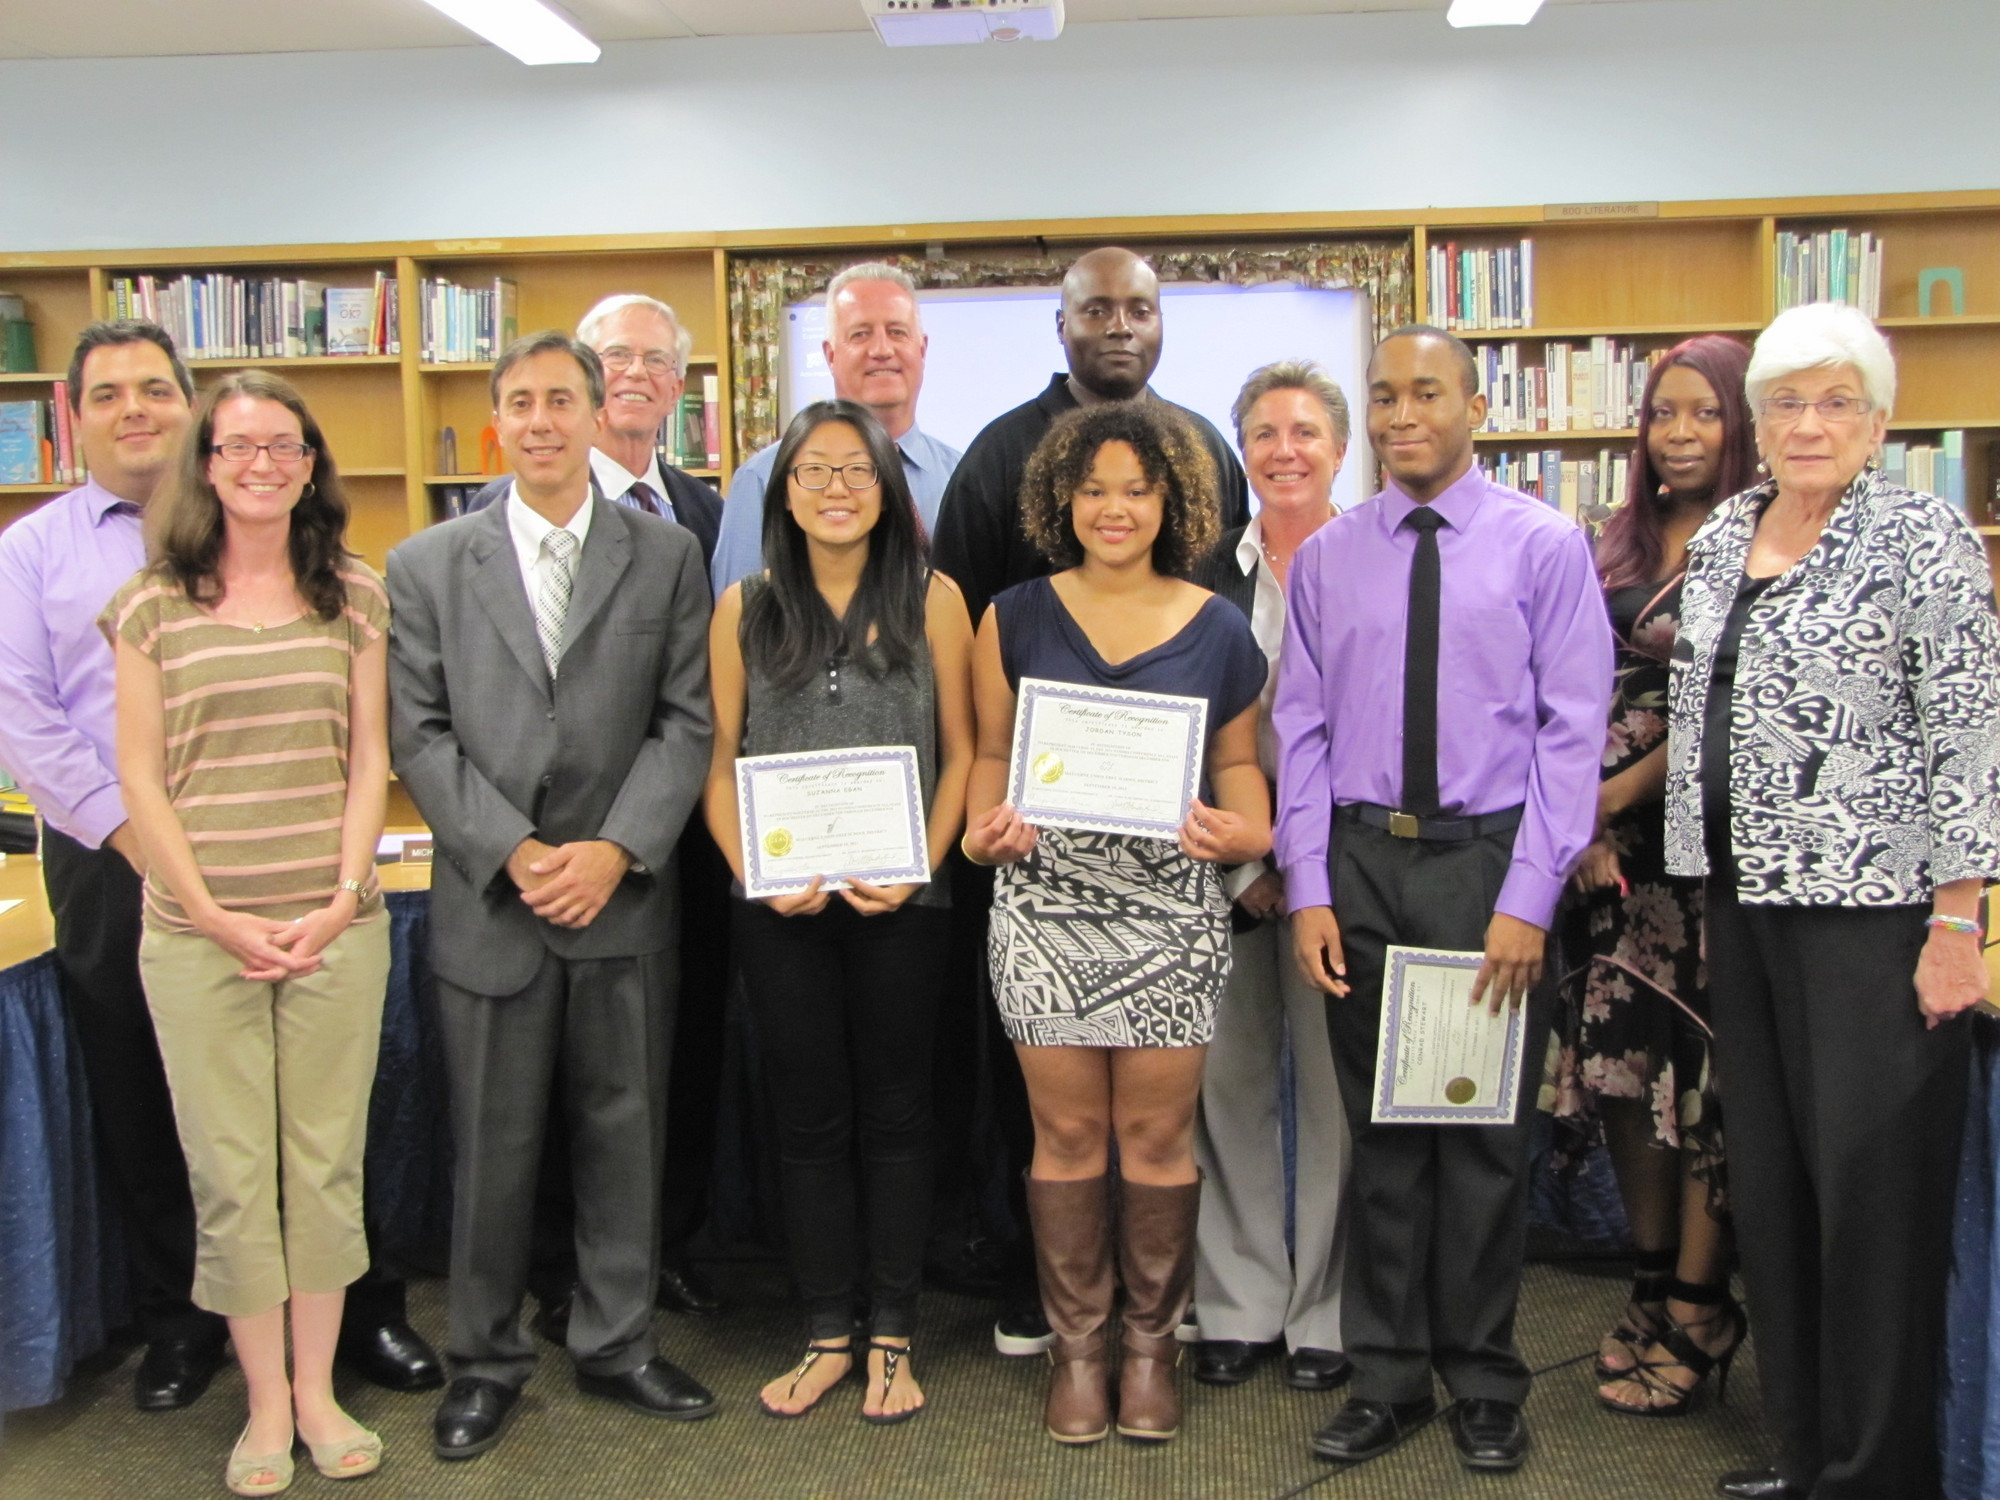 Tyson, Egan and Stewart were honored by Superintendent Dr. James Hunderfund, music department staff and members of the Board of Education at the Sept. 10 Board meeting.